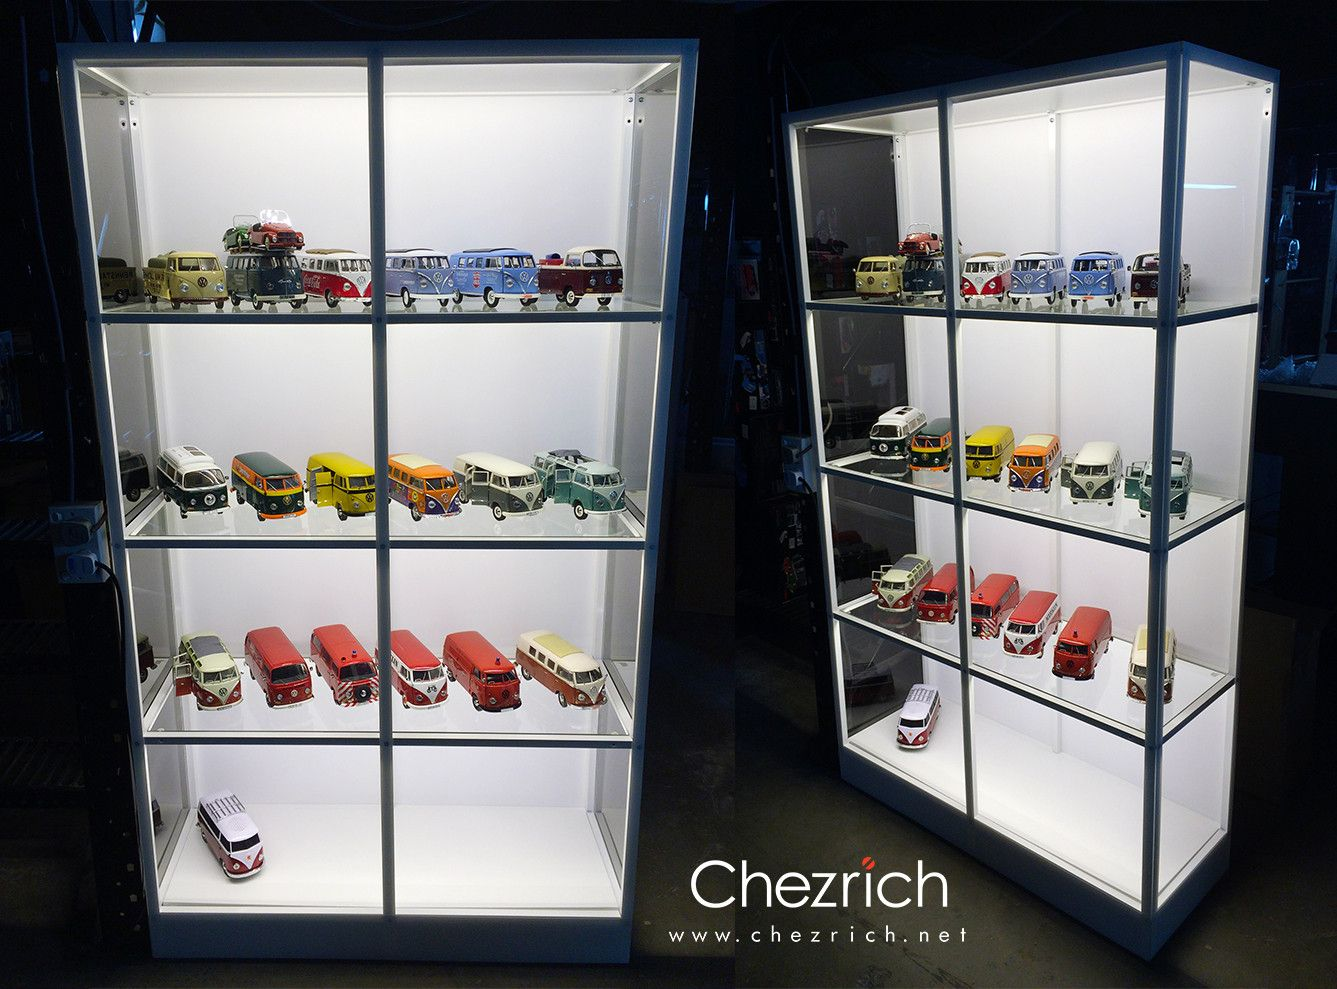 77 Acrylic Display Cabinets For Sale Backsplash For Kitchen Ideas Check More At Http Www Planetgreenspot Display Cabinet Display Storage Cabinets For Sale